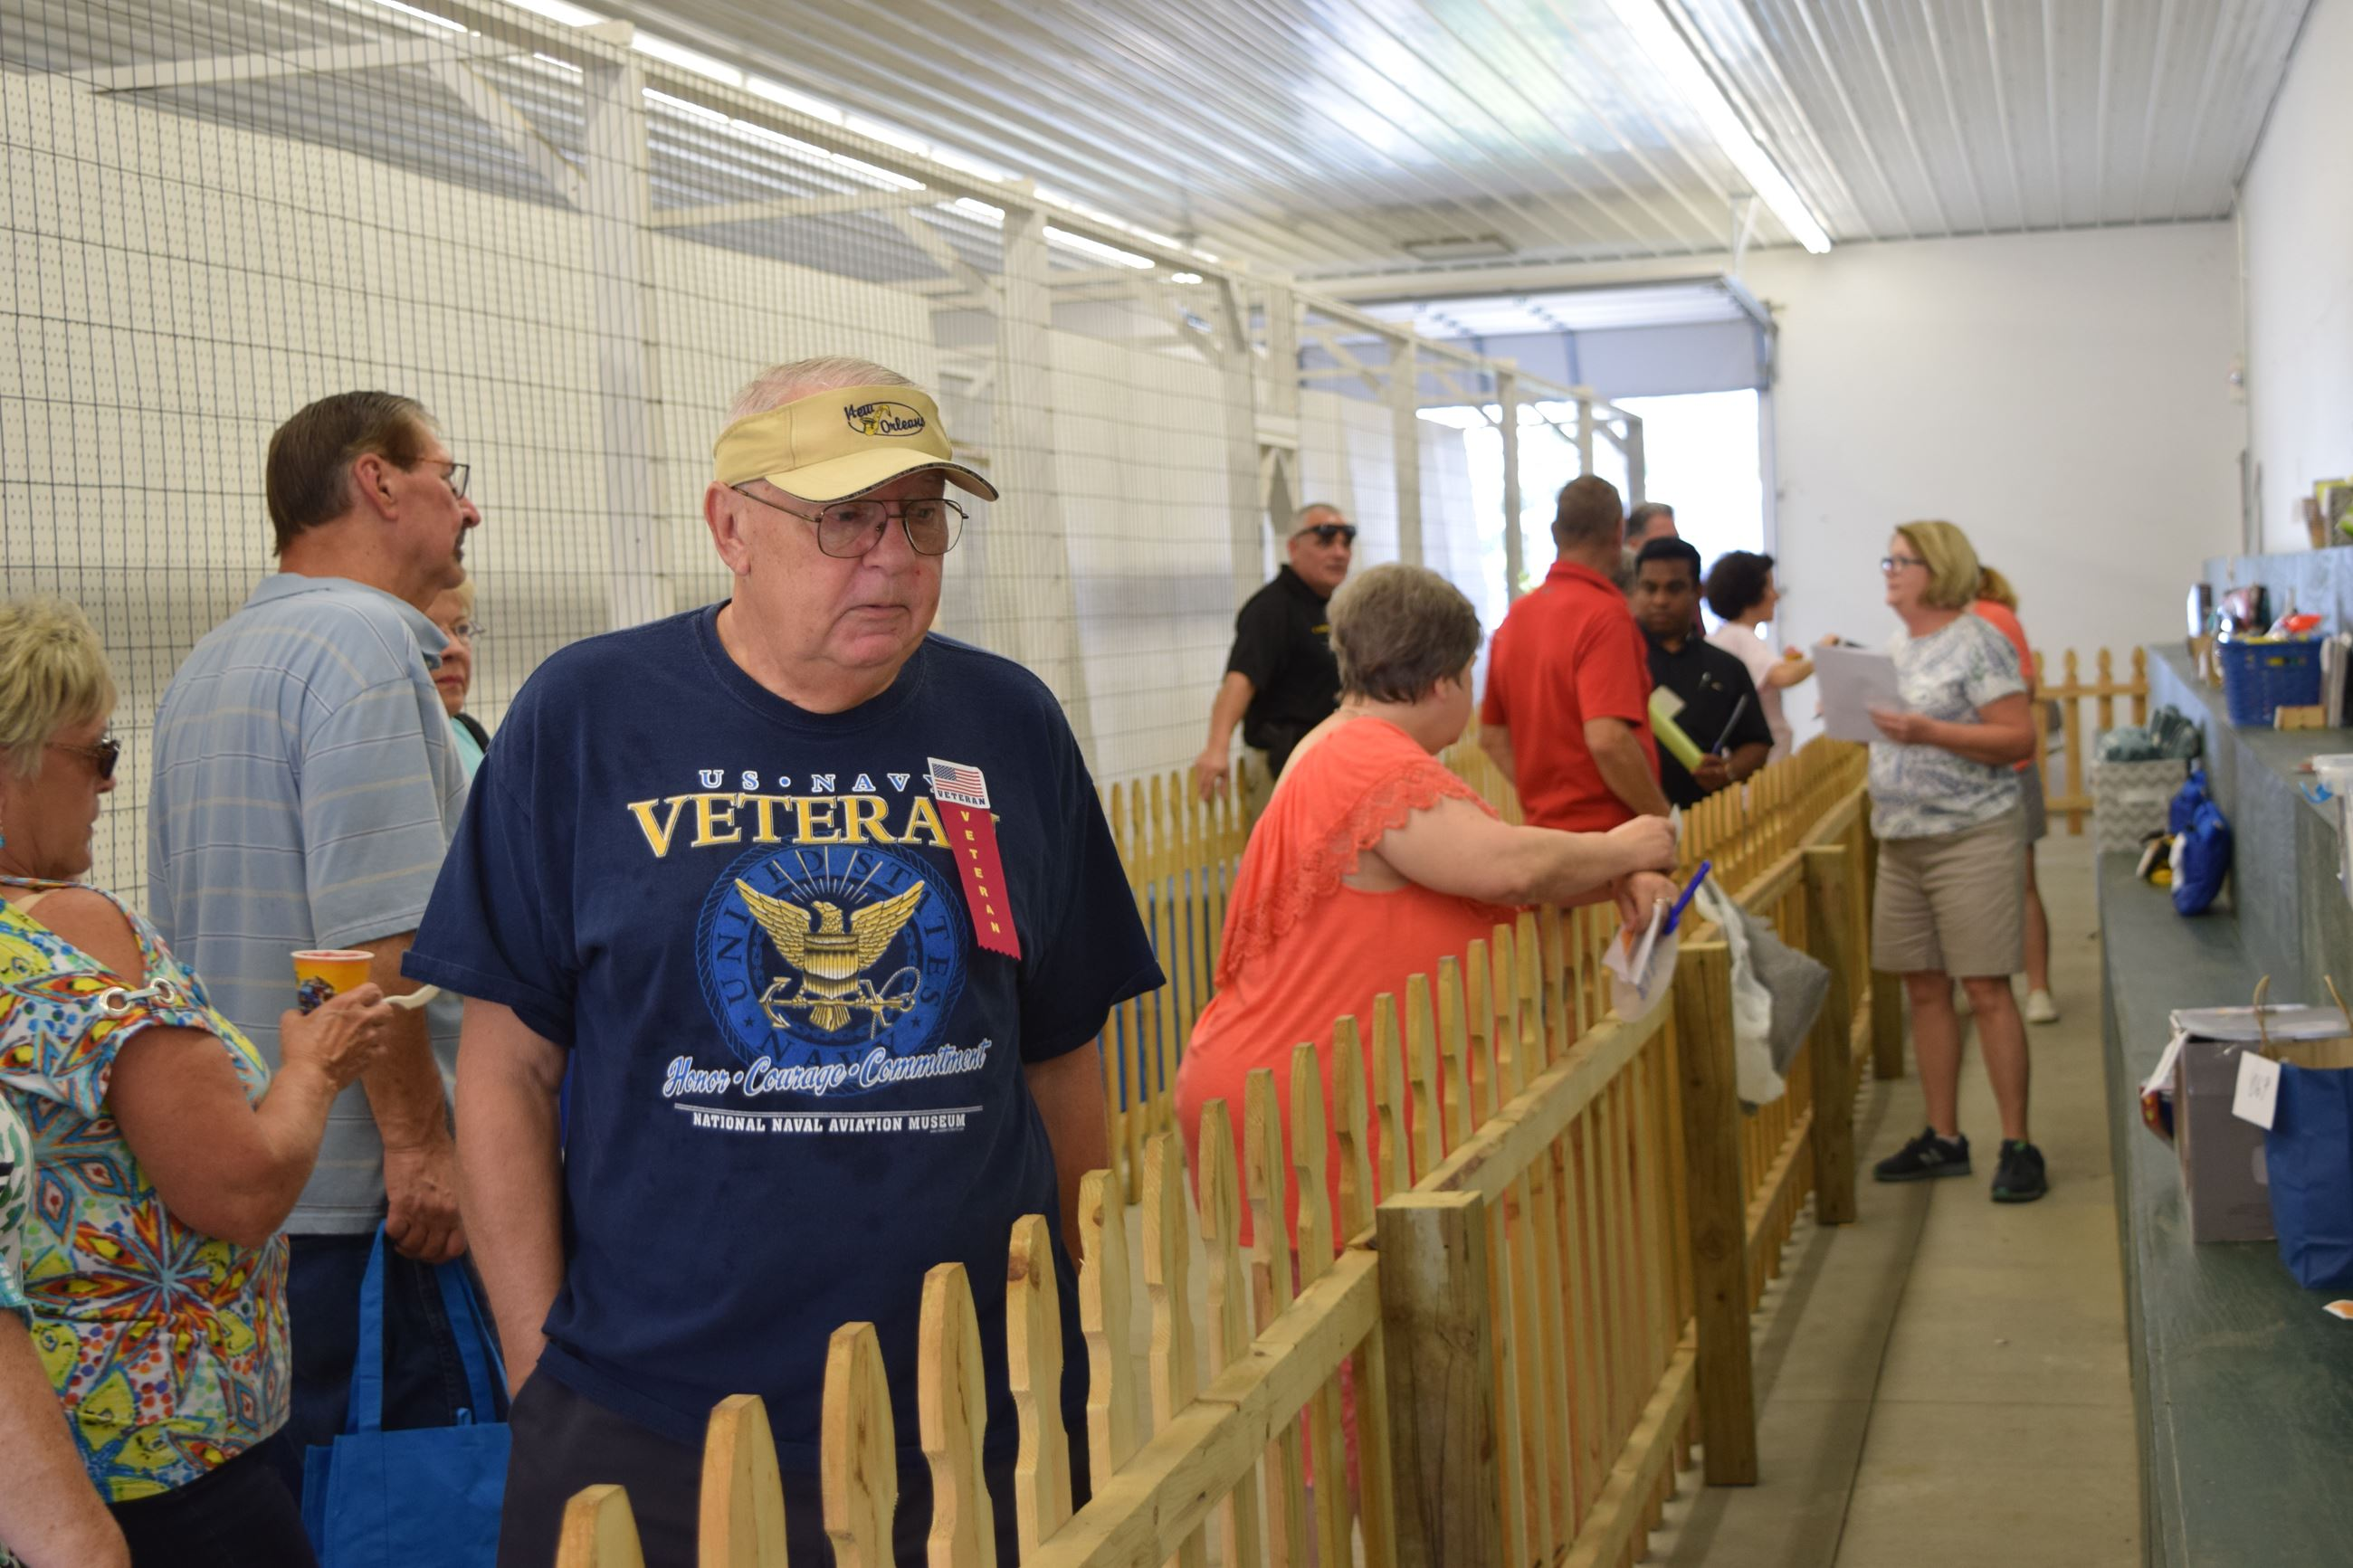 People lined up by an indoor fence